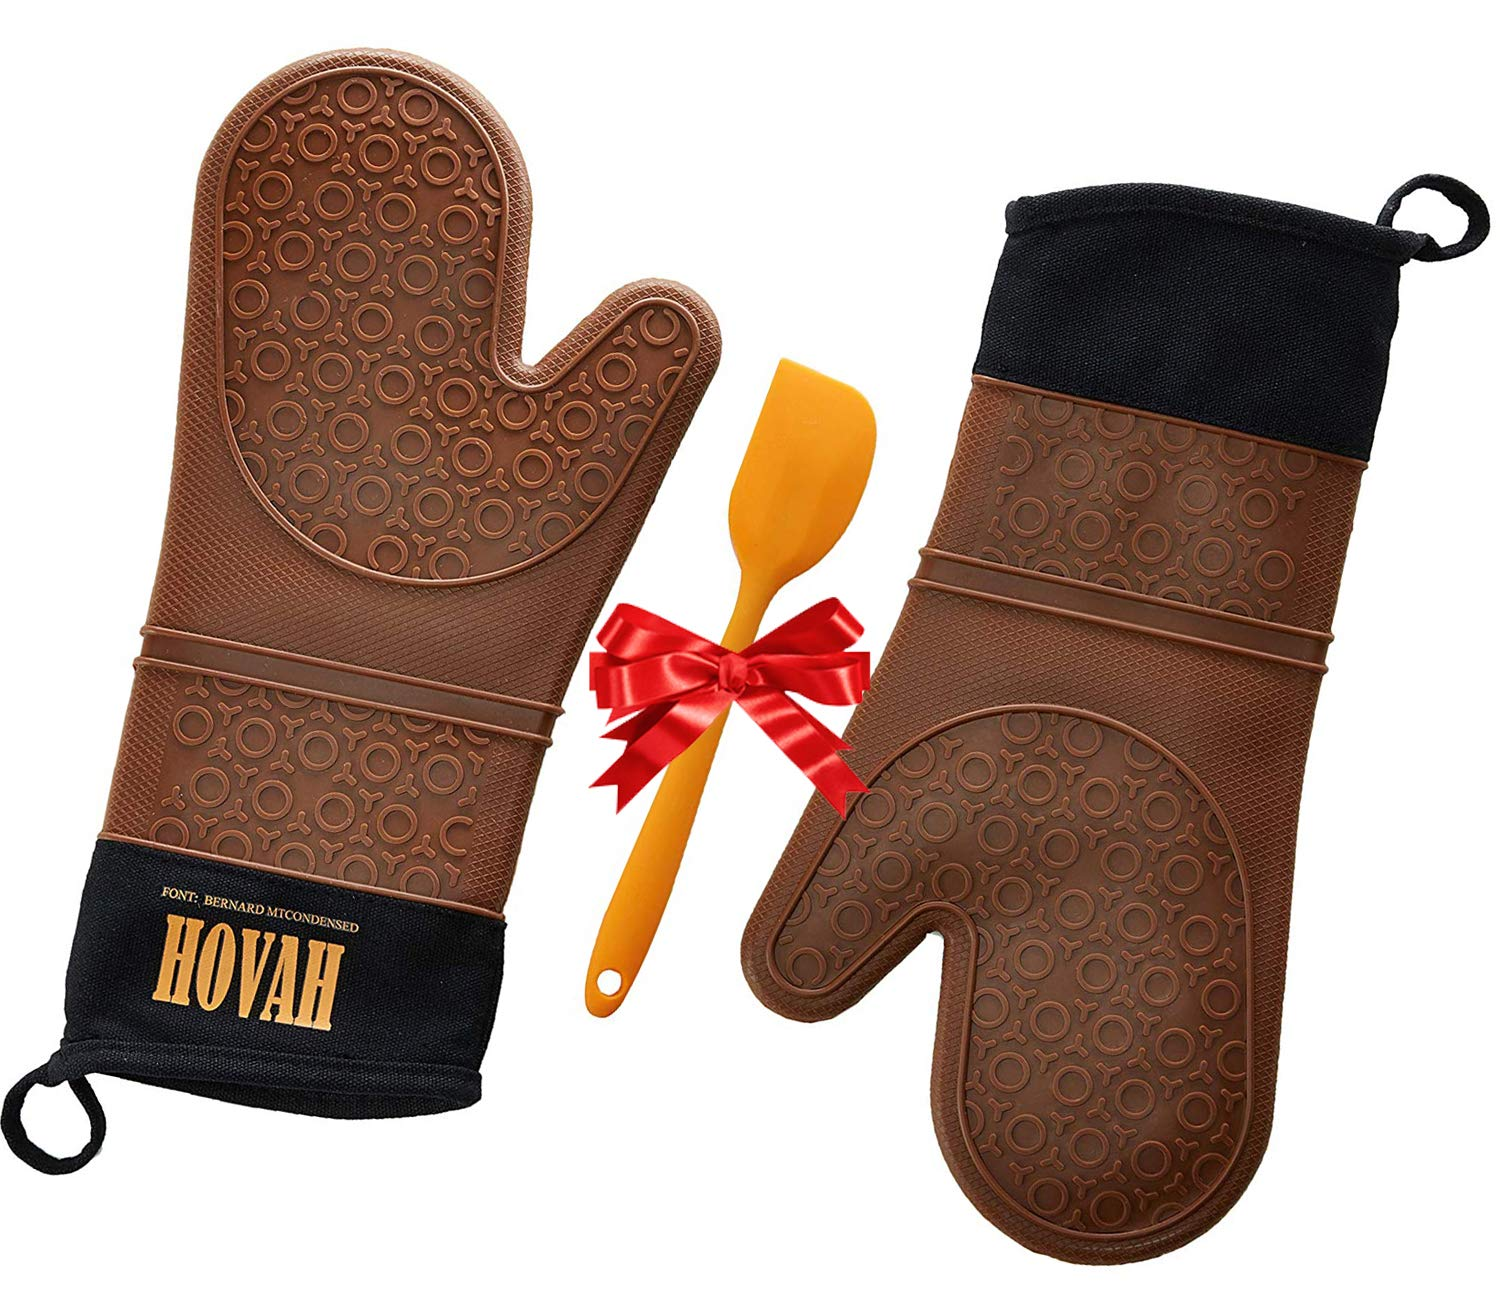 Hovah Professional Oven Mitts, Multipurpose, Grill, BBQ, Baking, Broil, Cooking, Extra Long,Nonslip, Heat Resistant,Silicone,Cotton,Lining,Comfortable,Secure,Safe,Protective,Waterproof,Outdoor